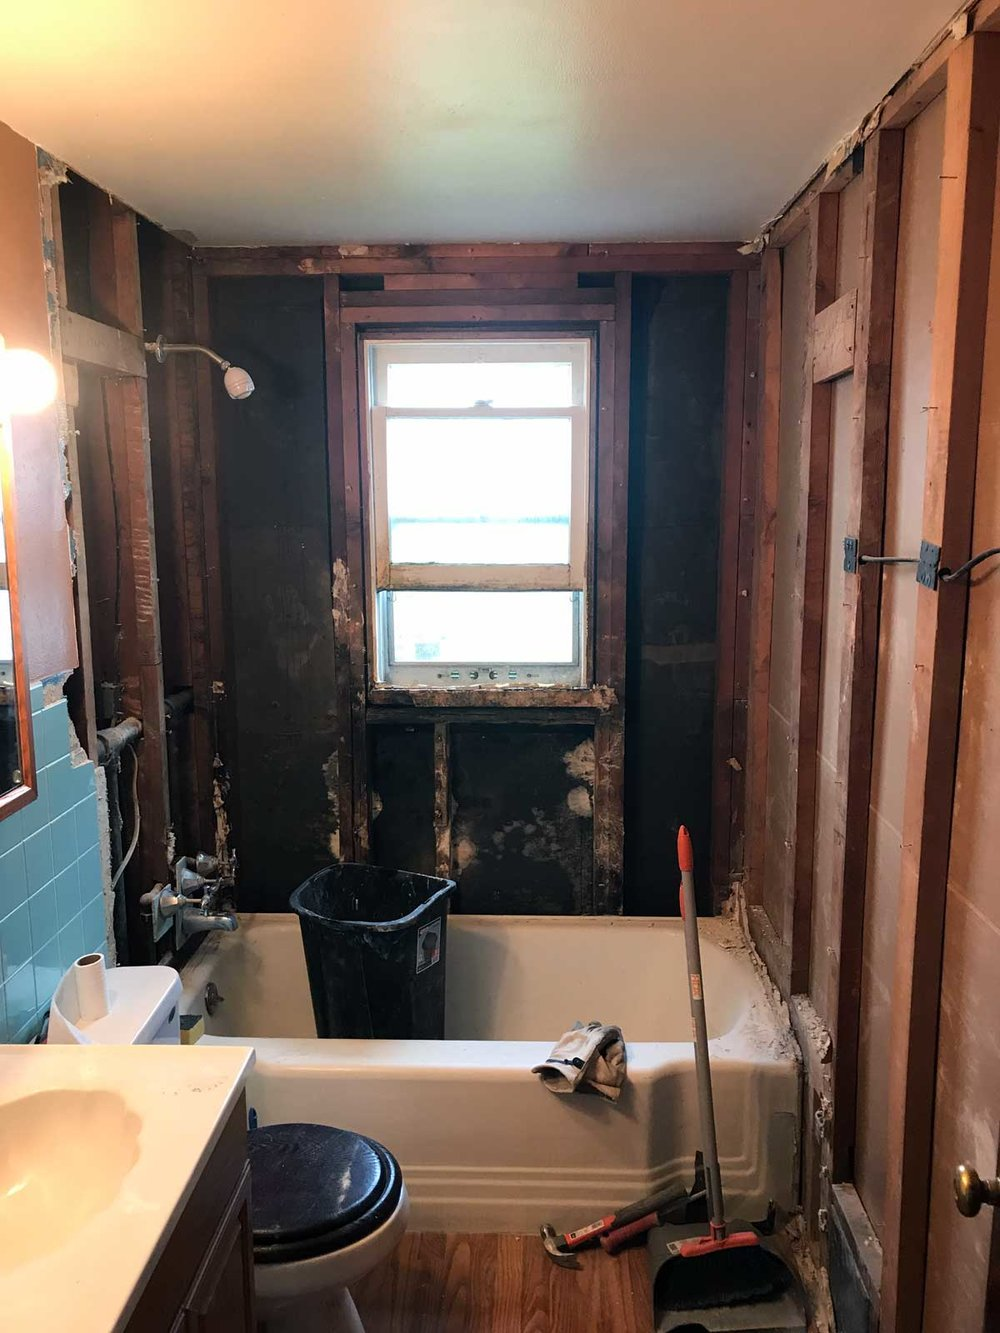 15-Day-Bathroom-Renovation-06.jpg